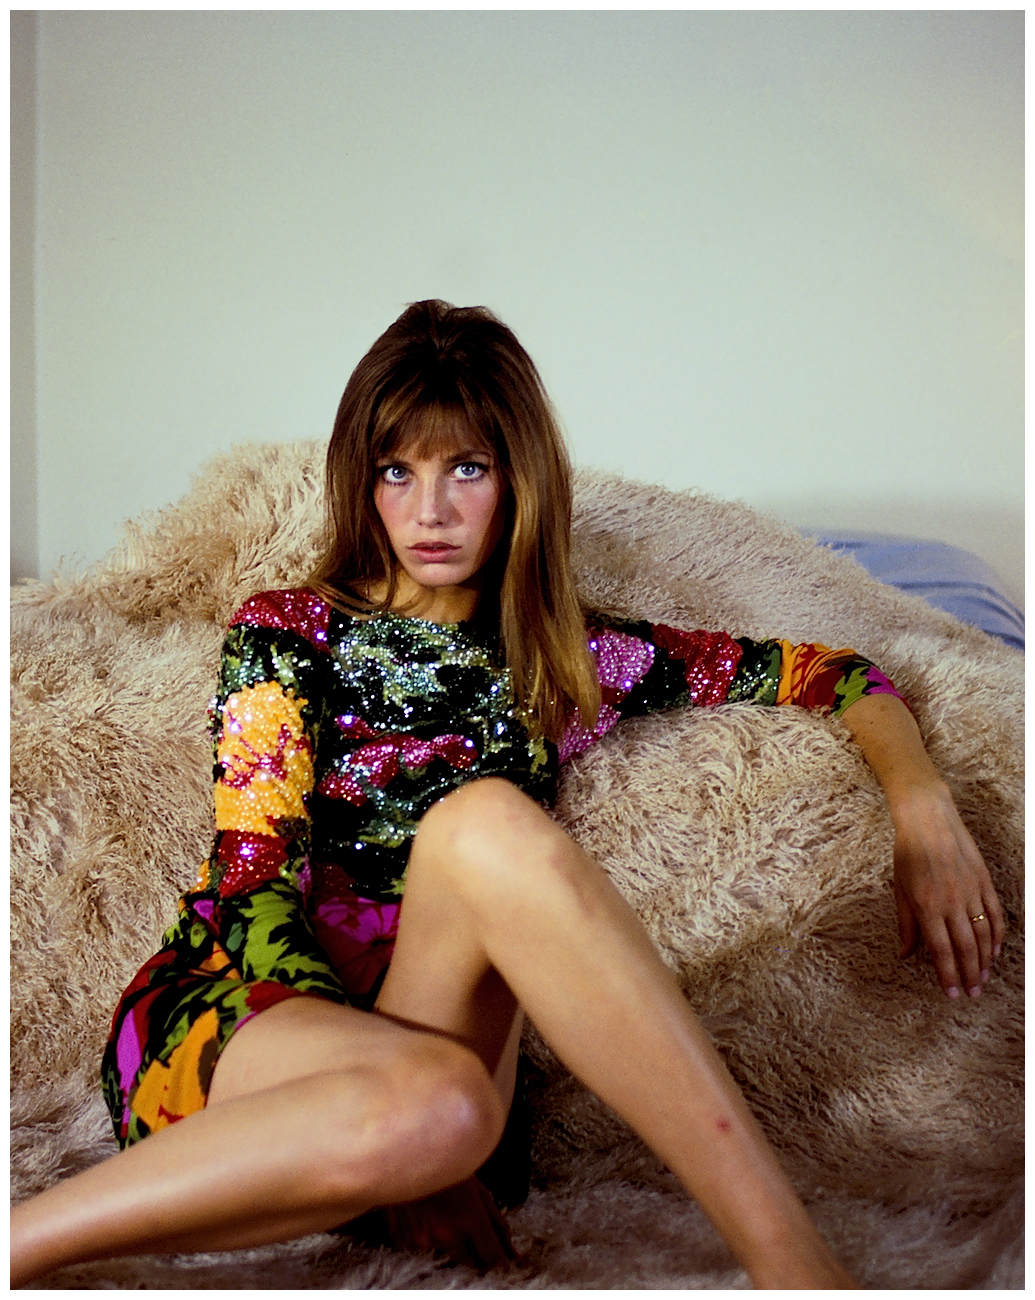 042-jane-birkin-theredlist.jpeg